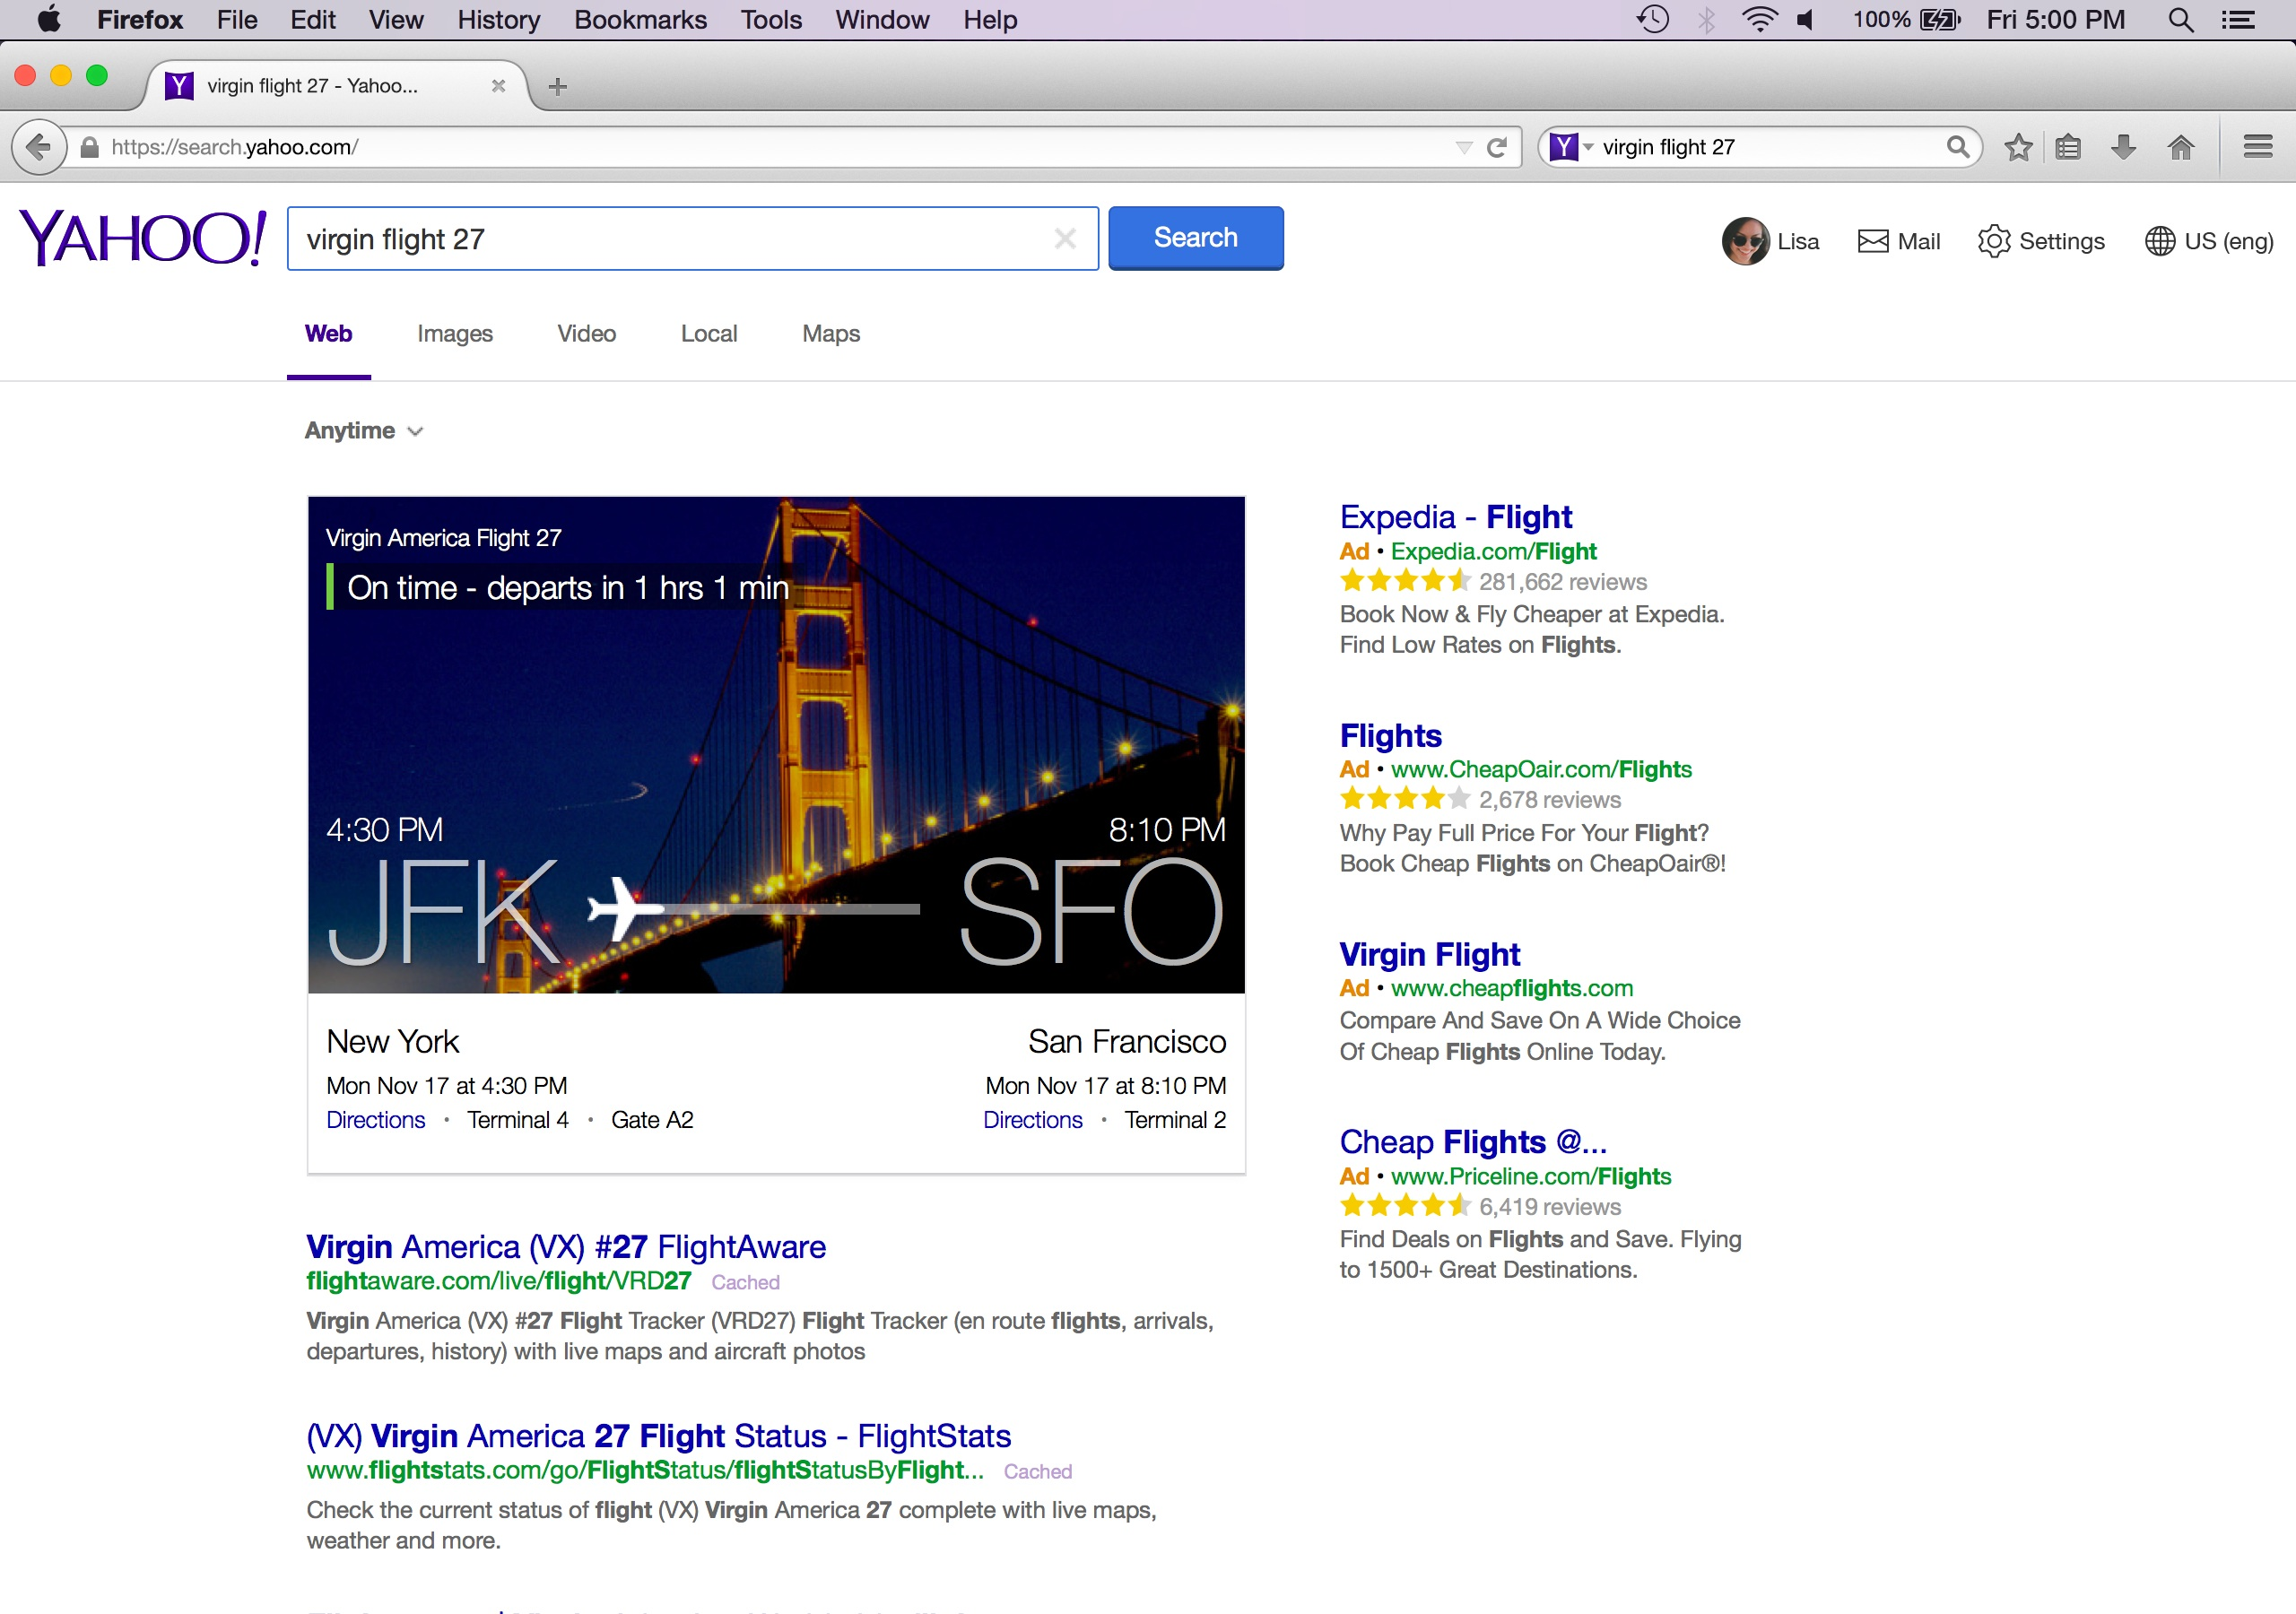 Mozilla Firefox Dumps Google in Favor of Yahoo! Search